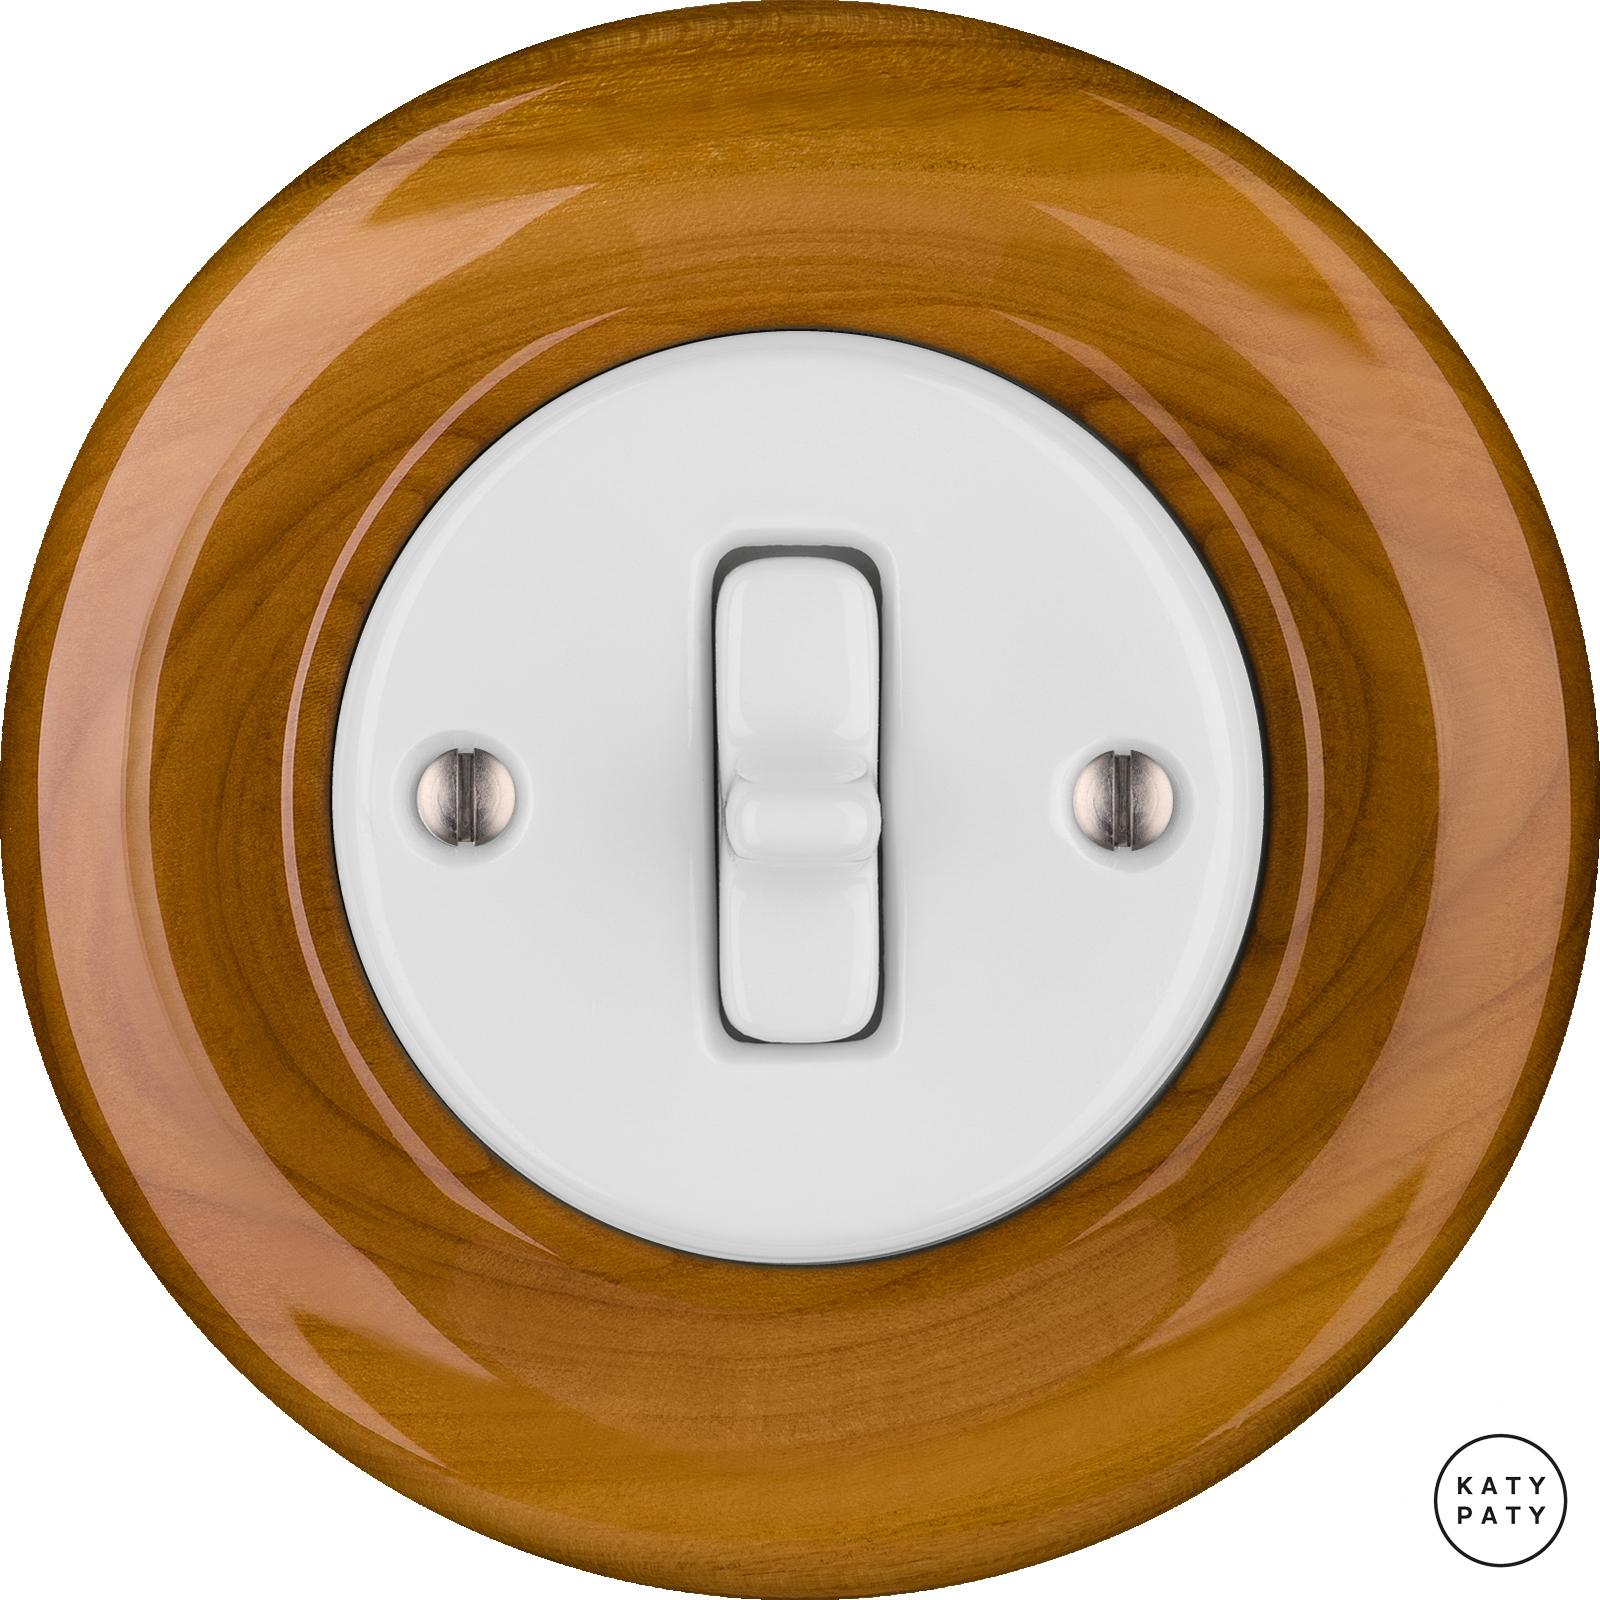 Porcelain Toggle switches - 1 gang ()  - PADELUS | Katy Paty